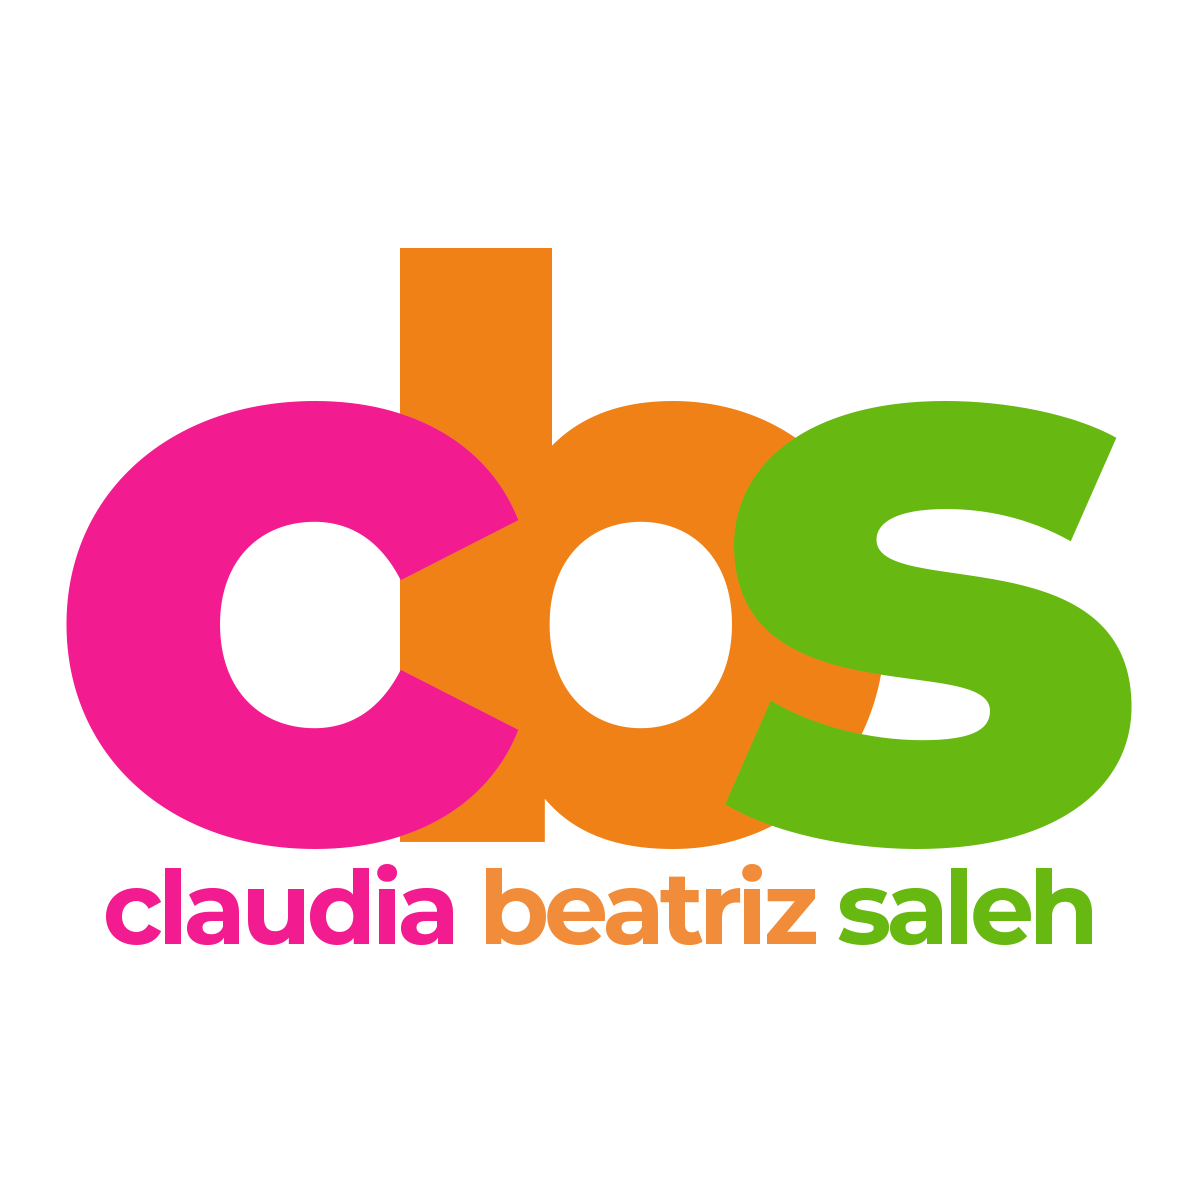 Claudia Beatriz Saleh